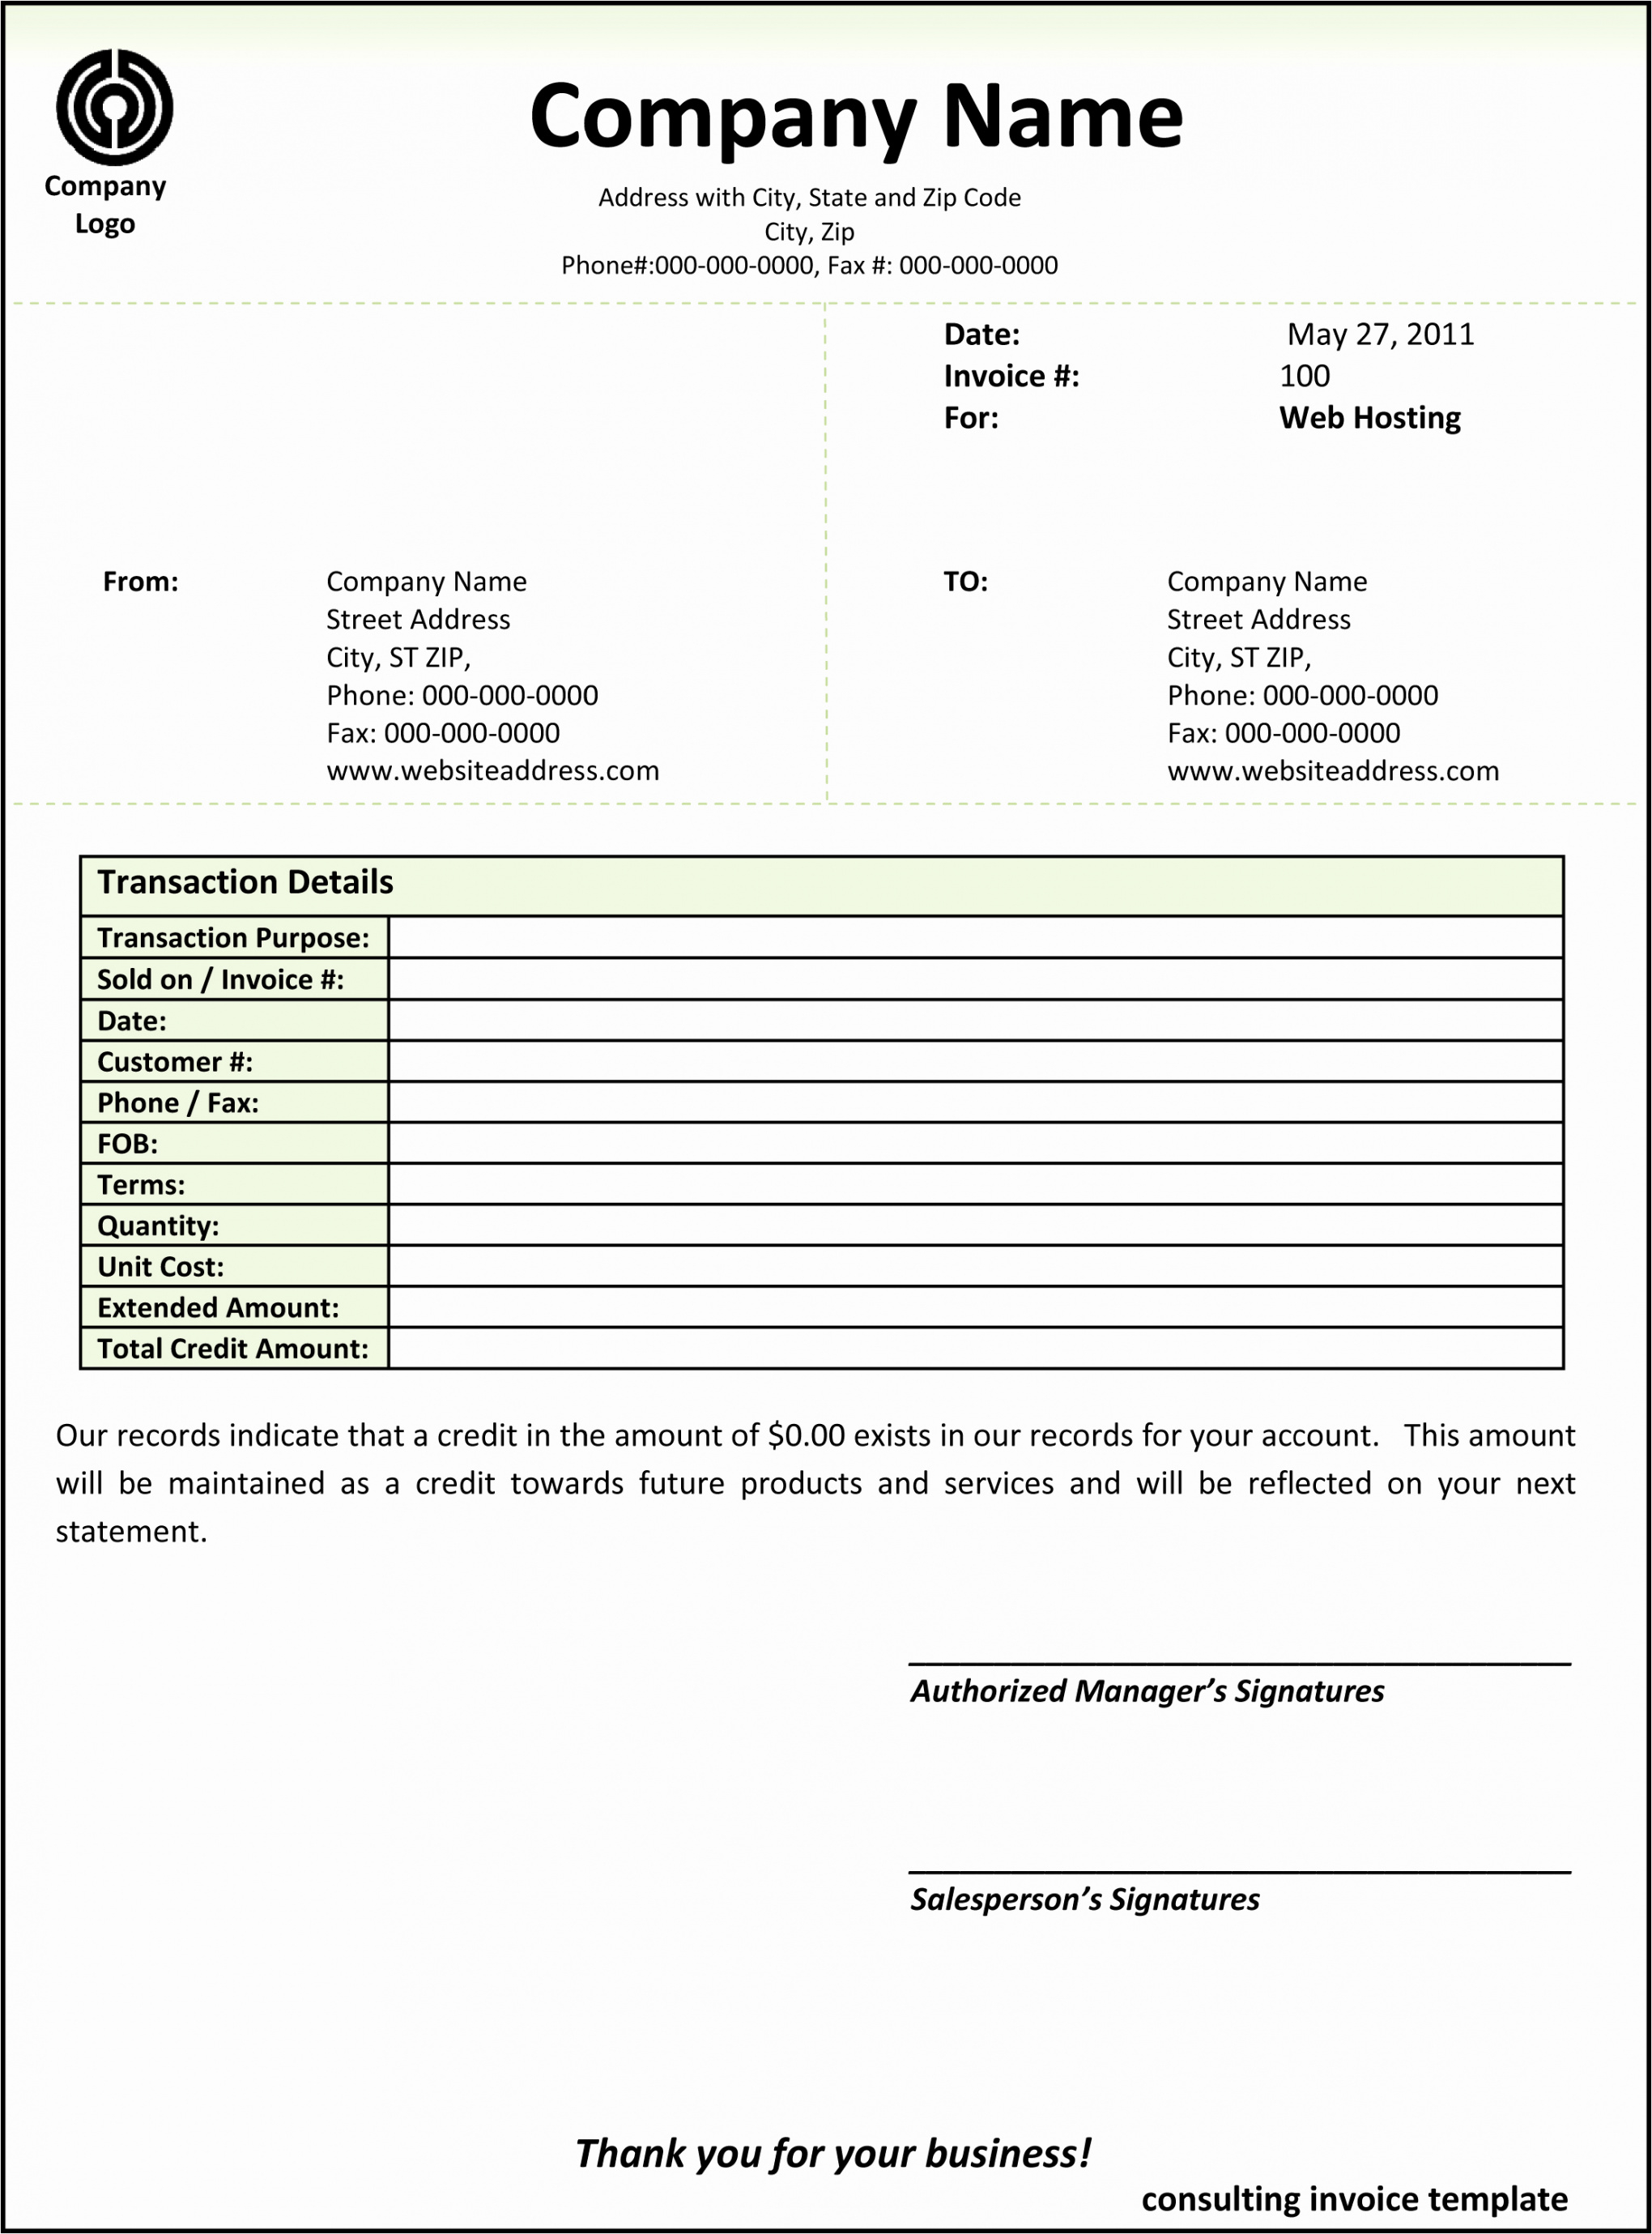 Free Invoice For Software Development Services Template Sample Software Development Invoice Template Doc